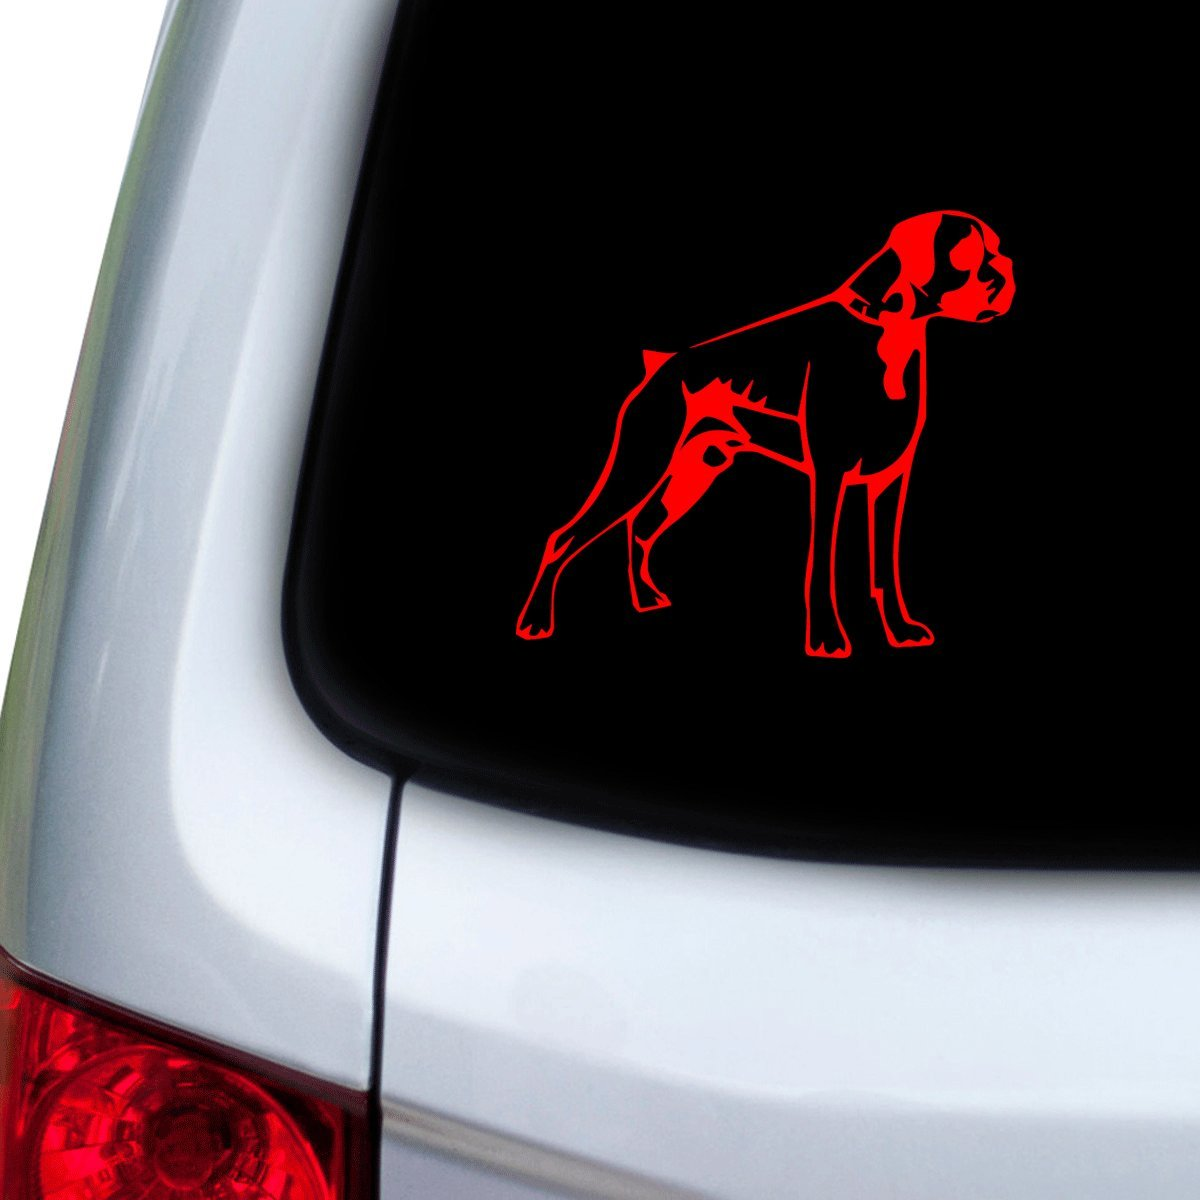 Hoods StickAny Car and Auto Decal Series Nice Boxer Sticker for Windows Doors Red